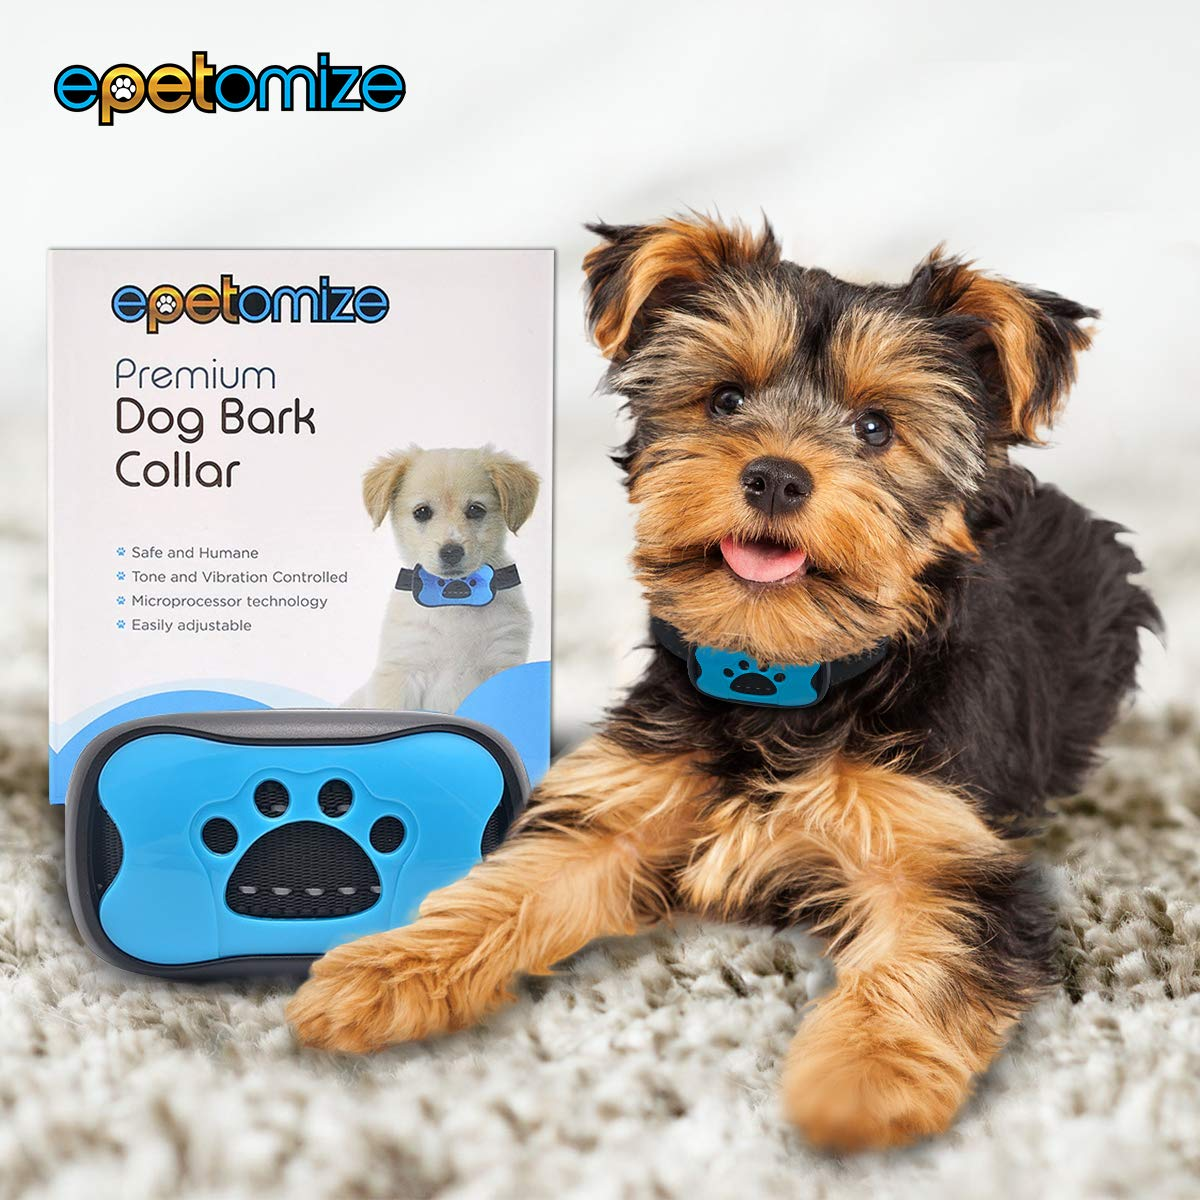 epetomize Anti Bark Dog Collar NO SHOCK or Spray – Safe harmless deterrent with HUMANE VIBRATION – Works For Small or Large Dog Breeds – Automatic Activation and Easily Adjustable with No Remote